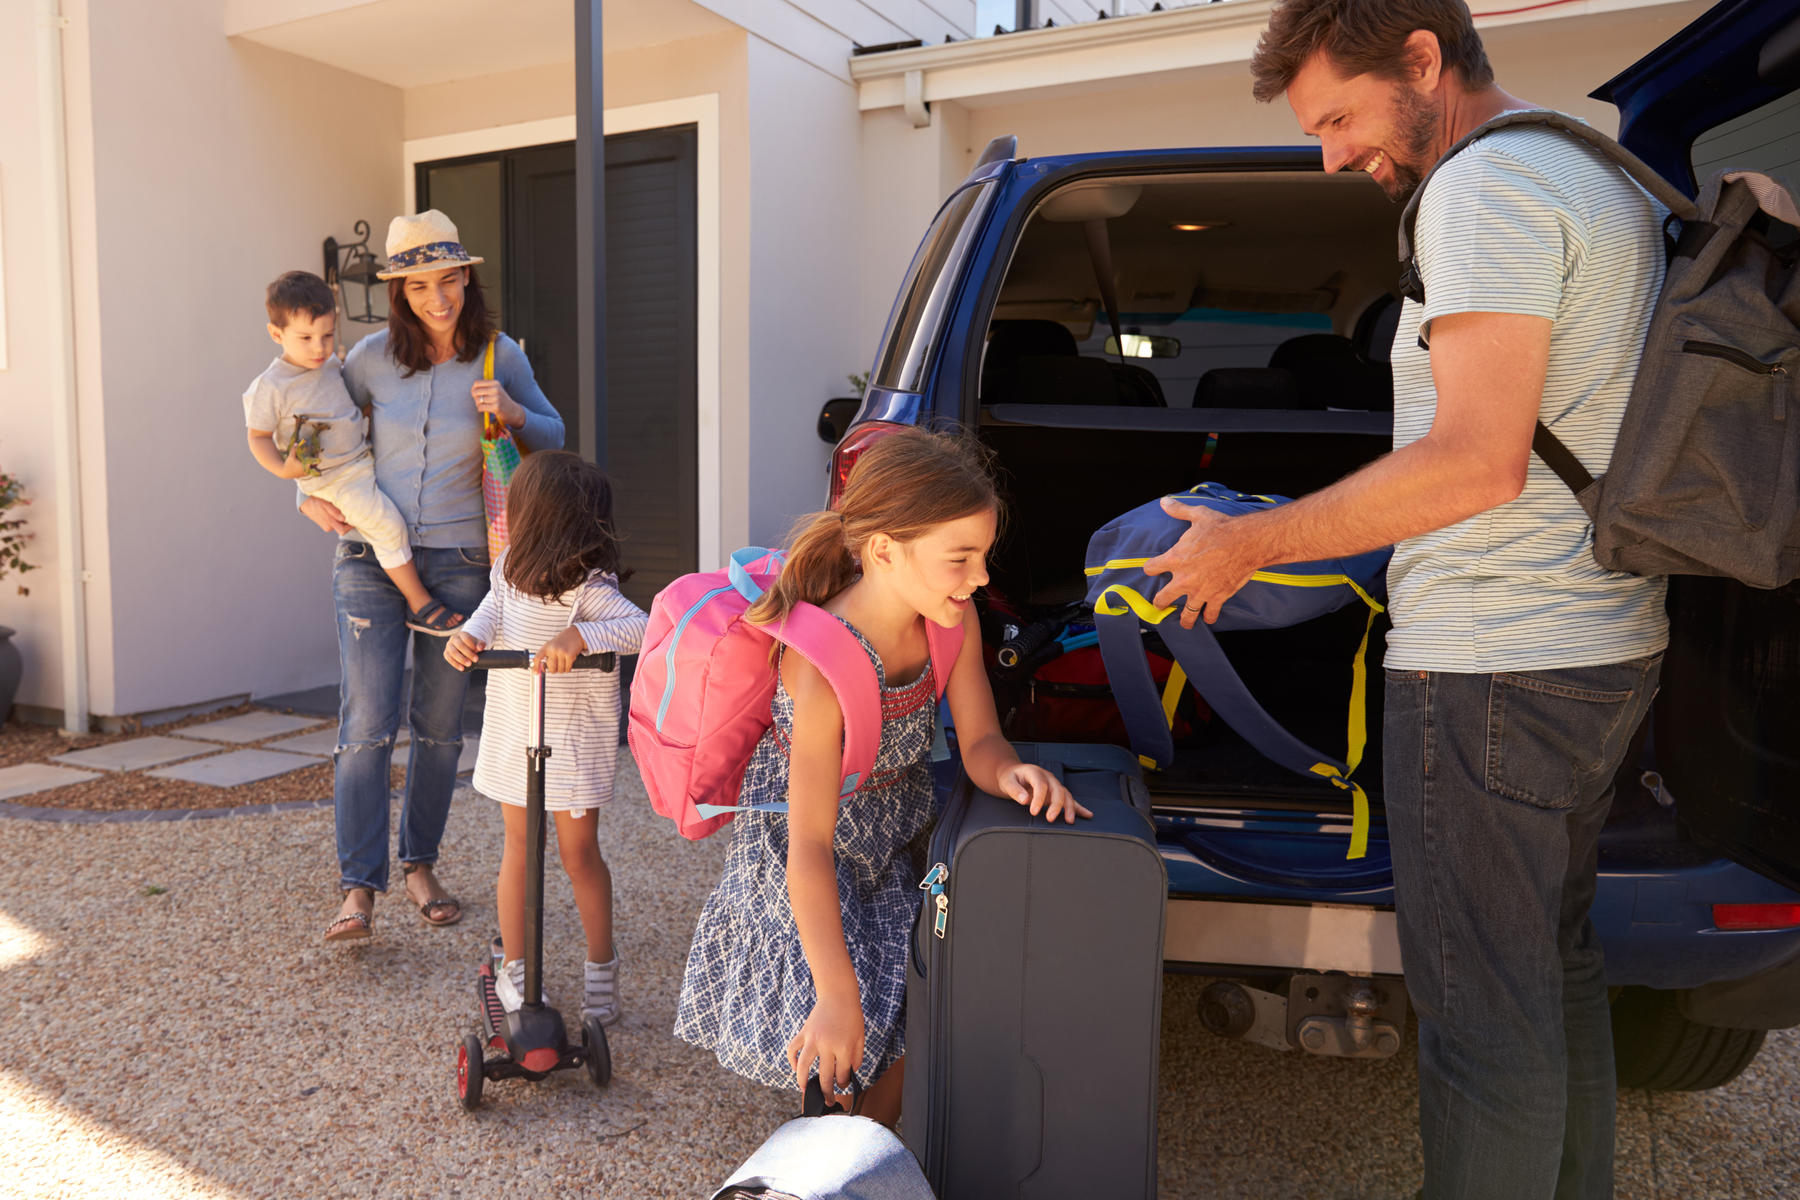 The Ultimate Packing List for All Family Summer Vacations